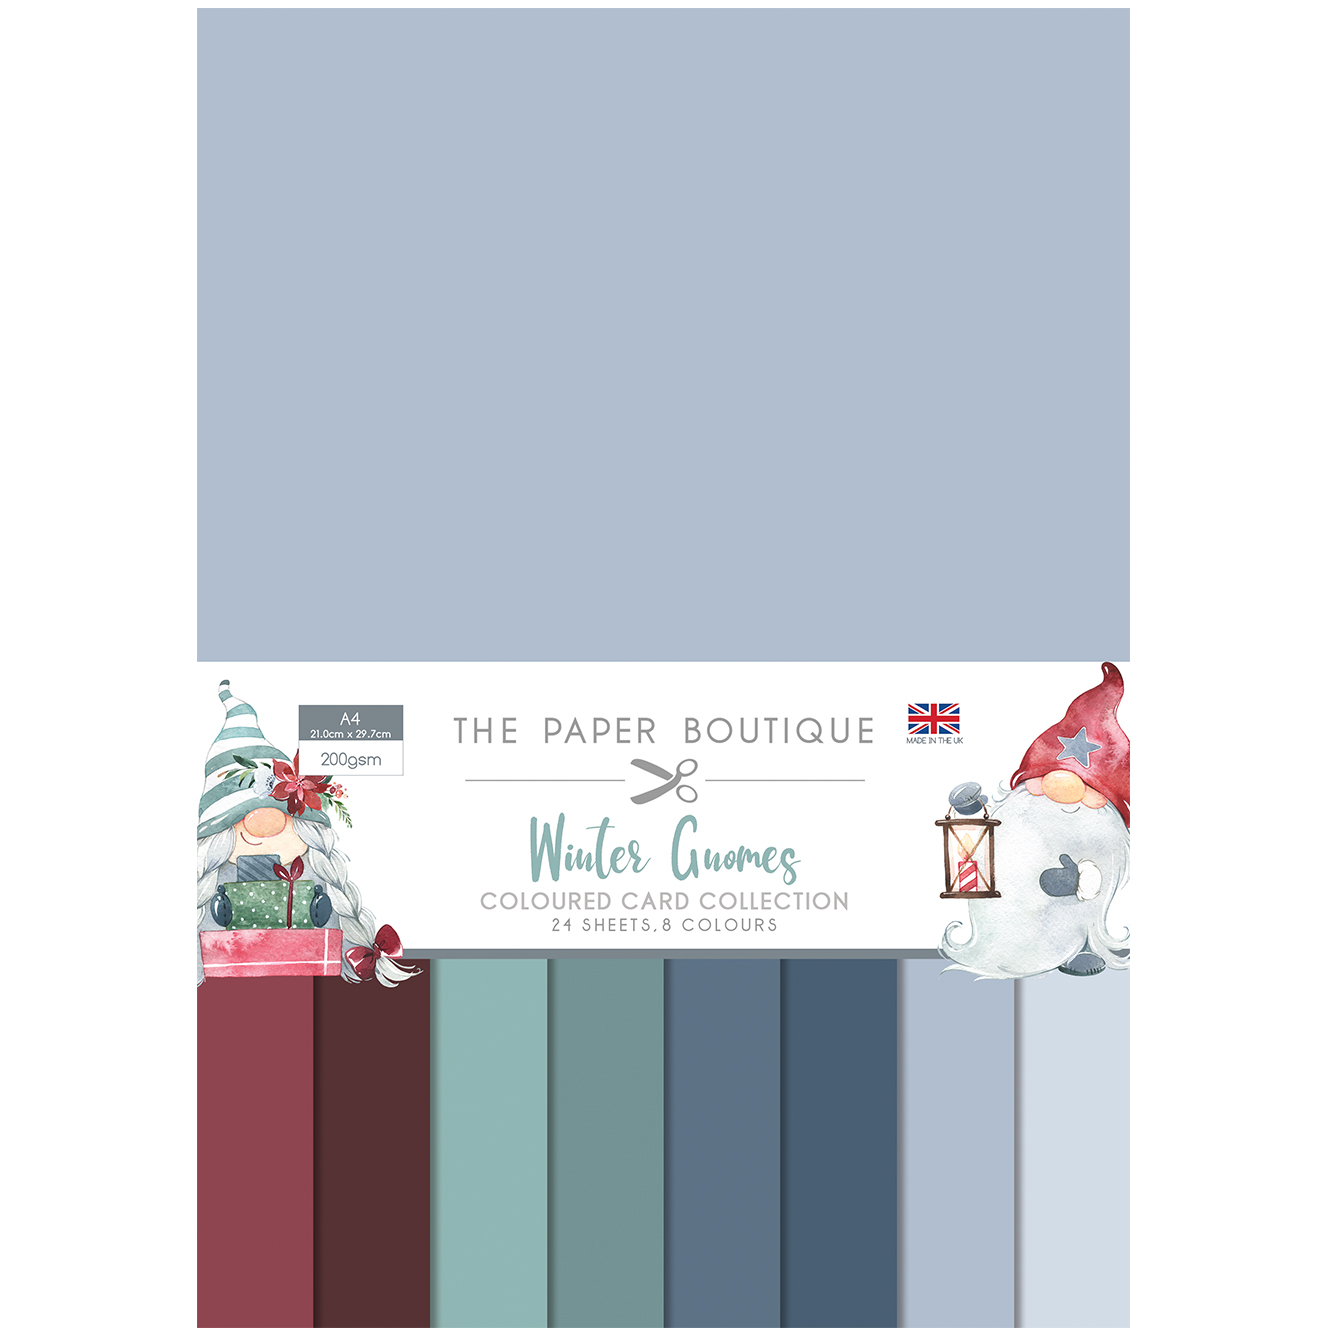 The Paper Boutique Winter Gnomes Coloured Card Collection